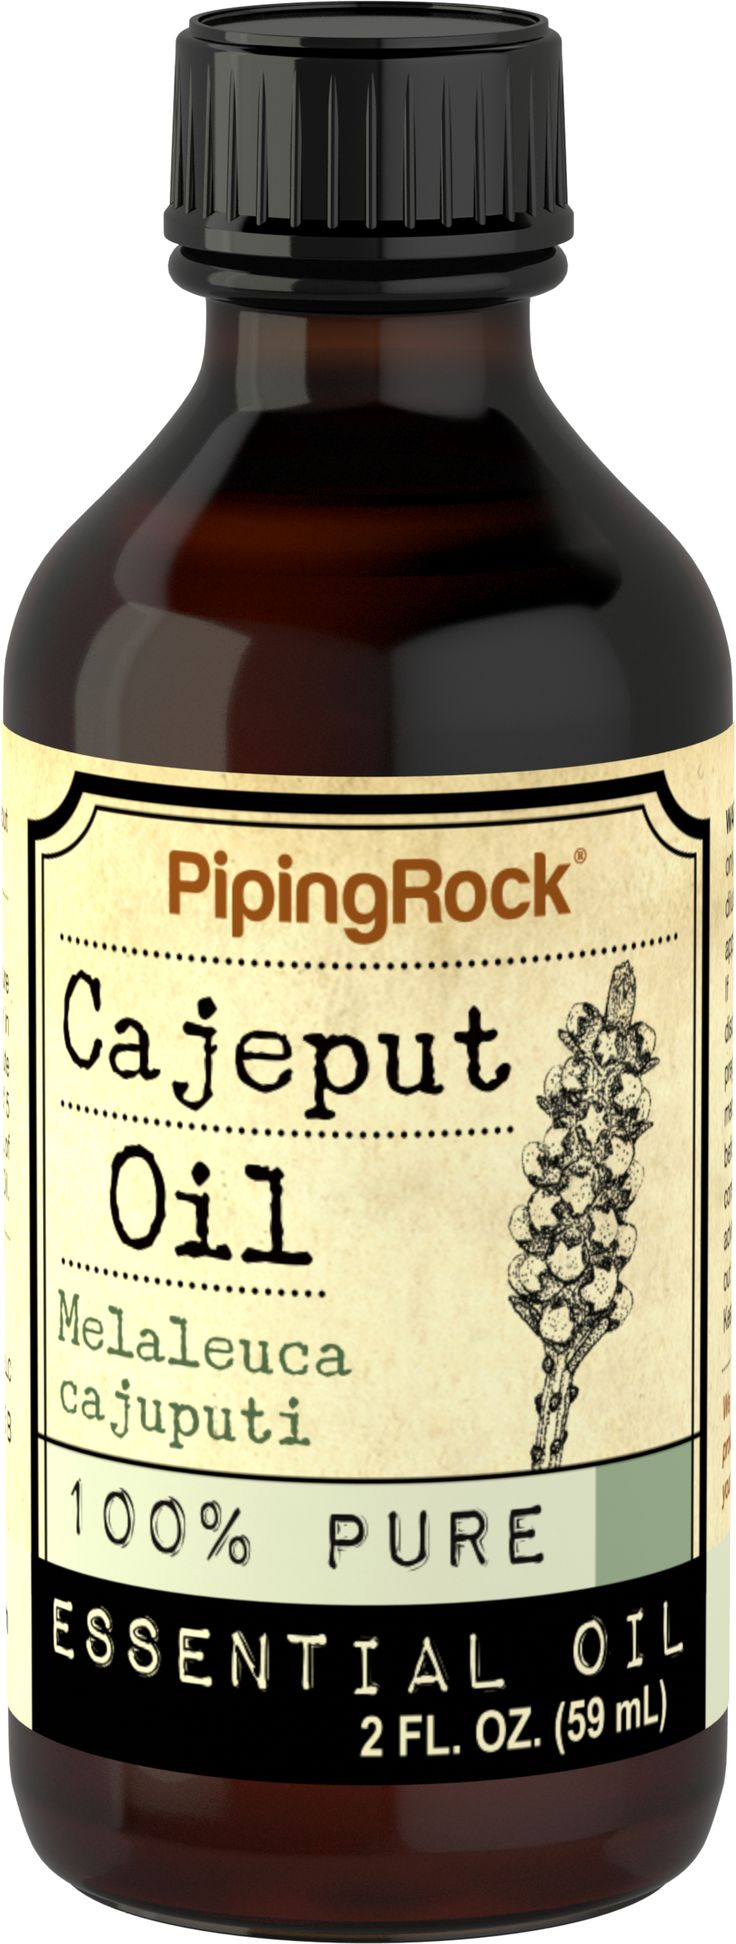 Cajeput 100% Pure Essential Oil | Piping Rock Health Products